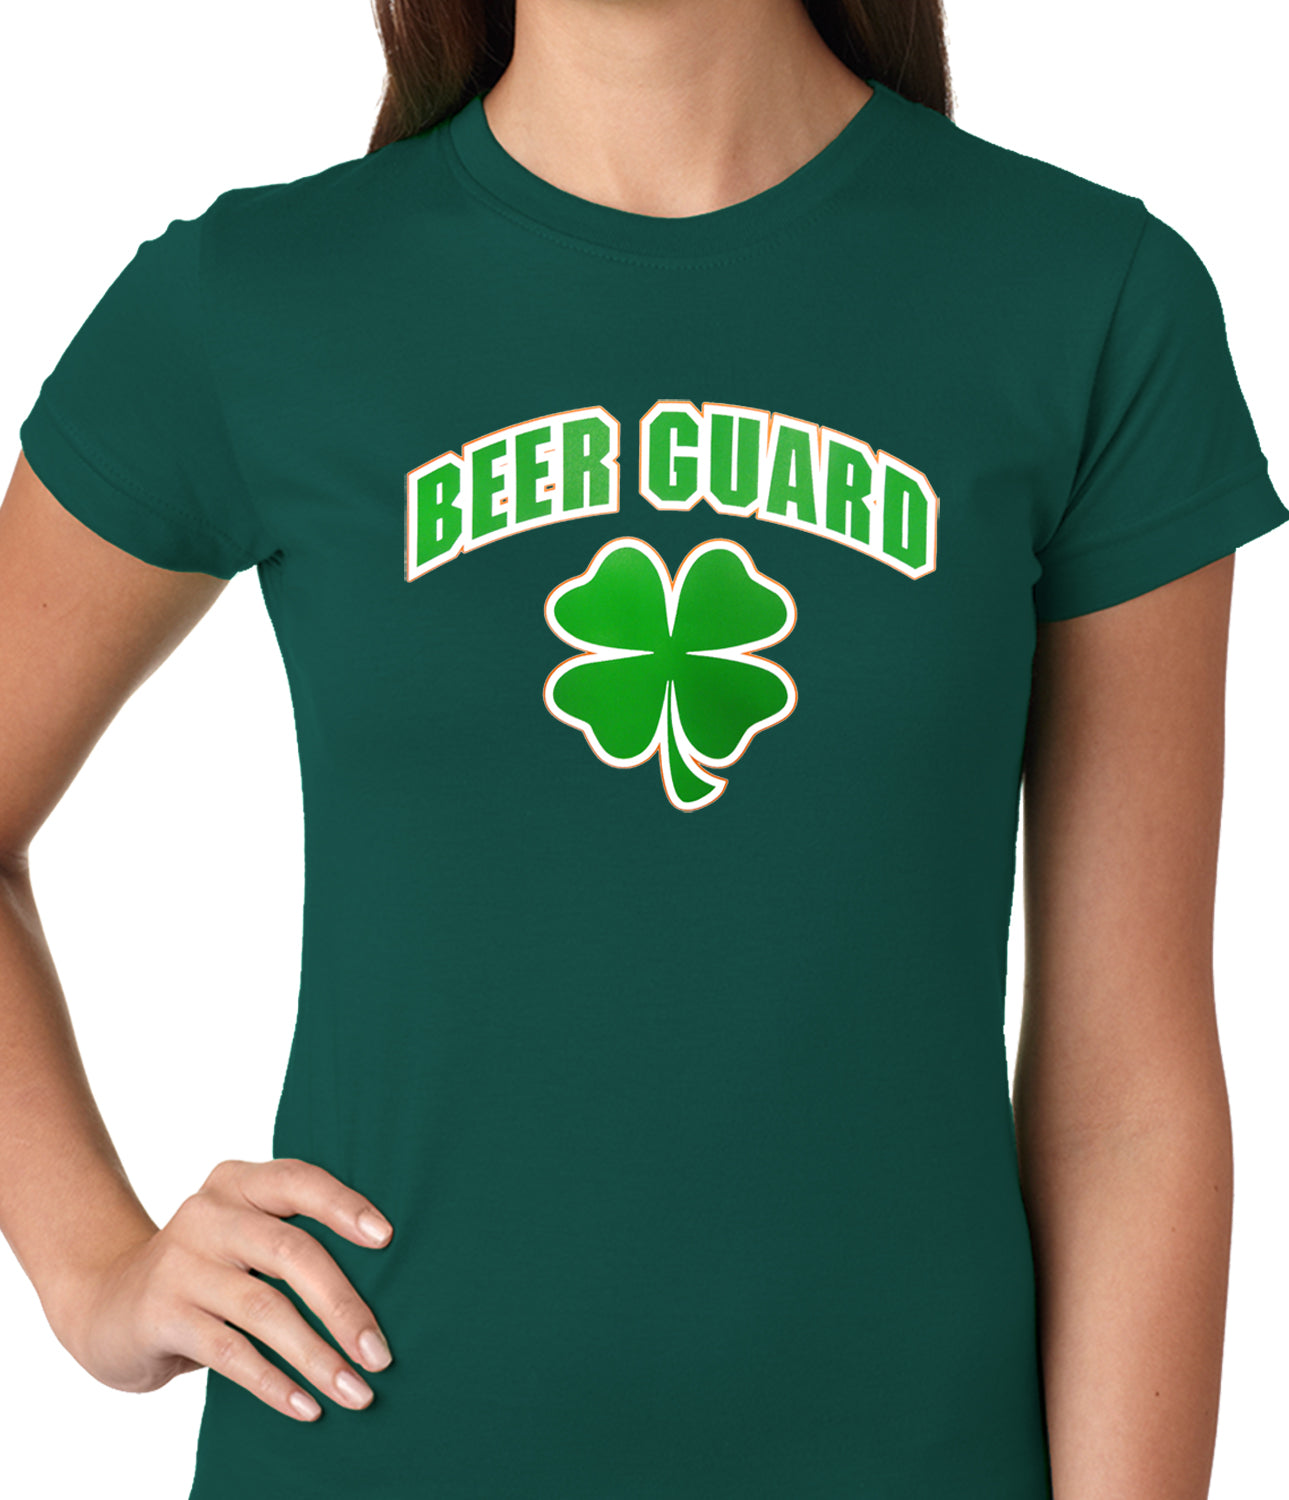 Beer Guard Irish Shamrock St. Patrick's Day Girls T-shirt Kelly Green